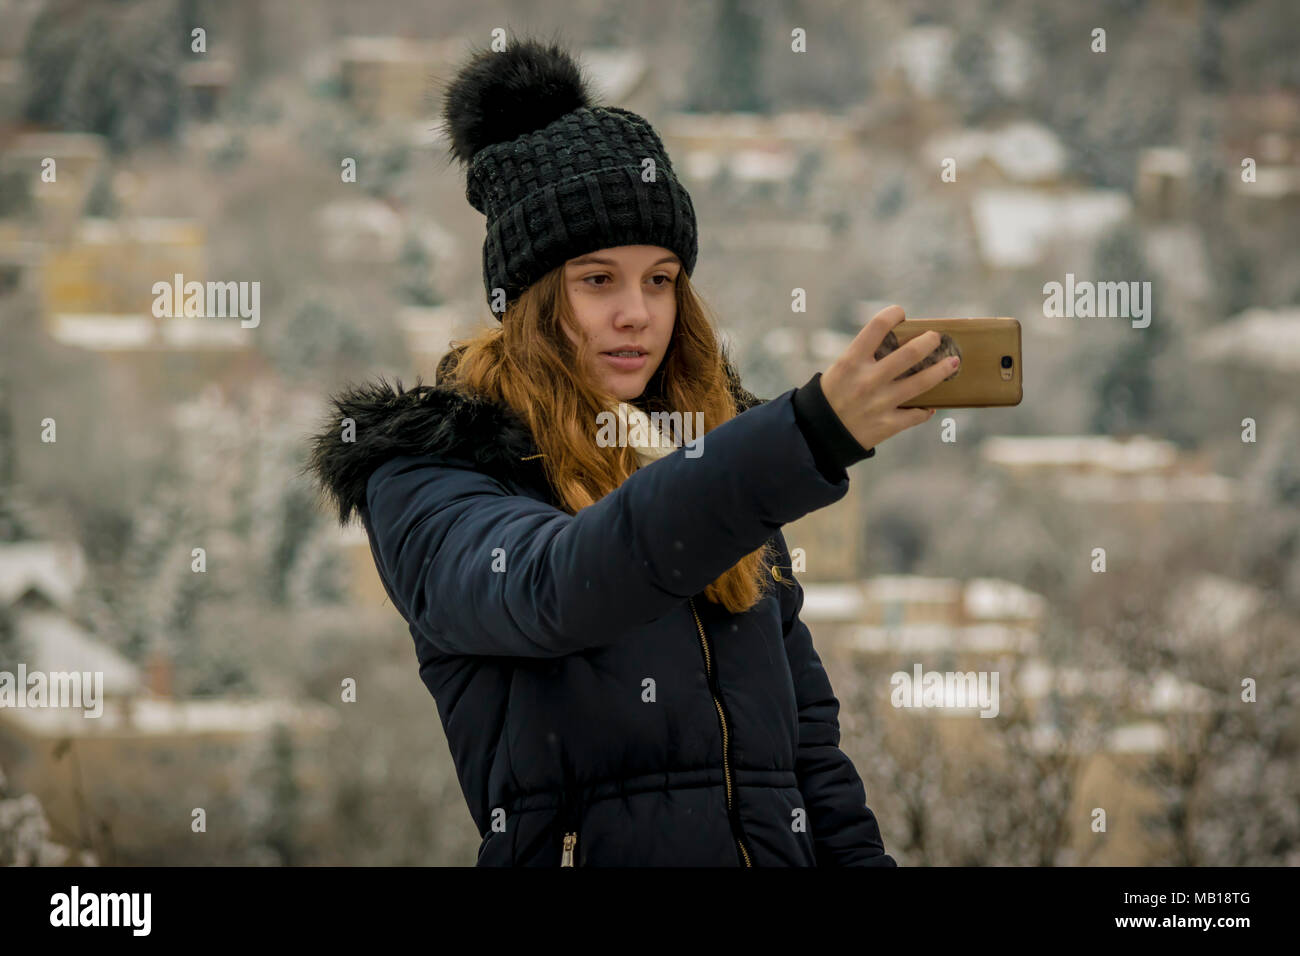 Pretty teen girl in snow, takes selfie with phone. Half body portrait of beautiful Caucasian teenage girl, blurred snowy city in background. - Stock Image